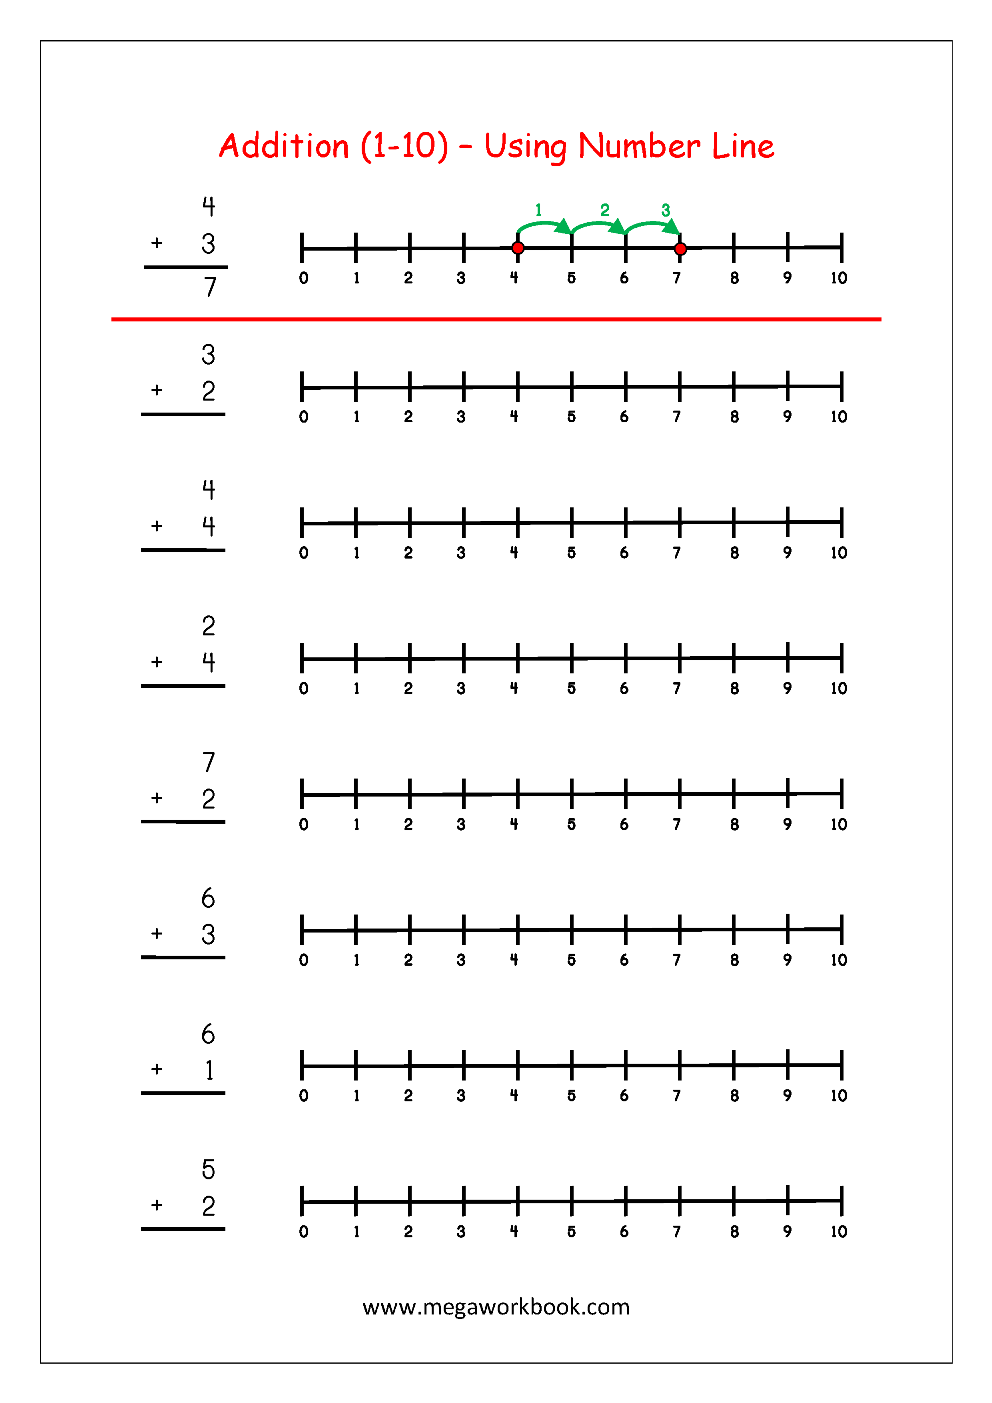 Worksheet Adding Using A Number Line free math worksheets number addition megaworkbook worksheet using line 1 10